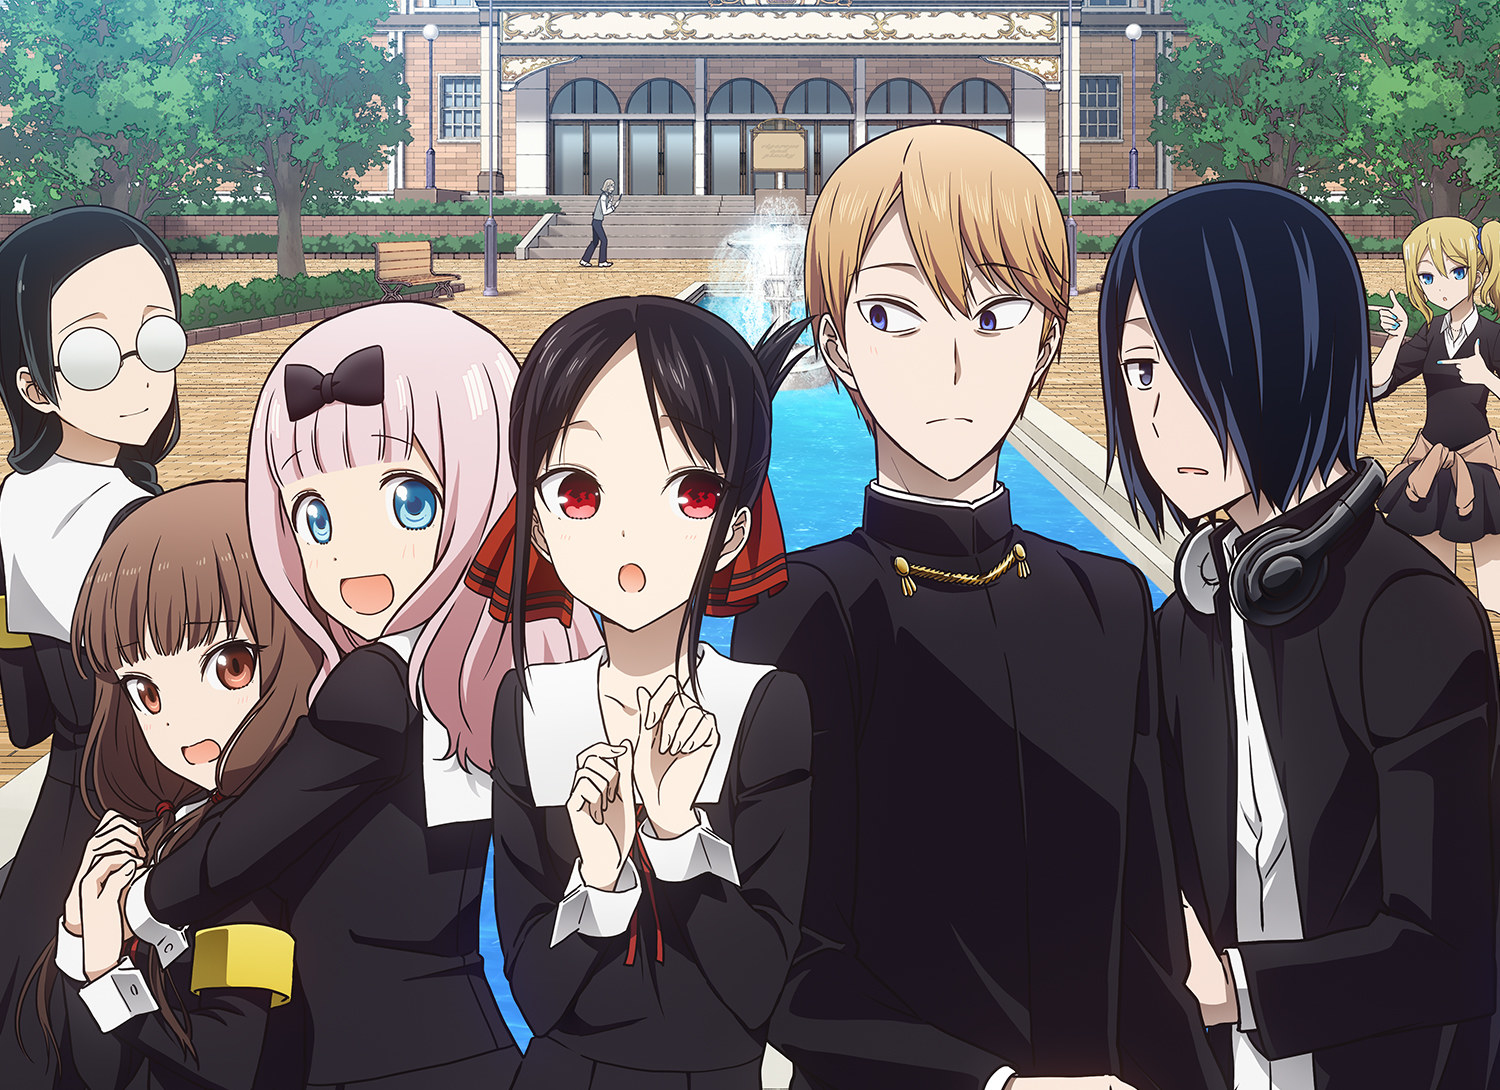 Characters of Kaguya-Sama: Love Is War standing in front of their school building